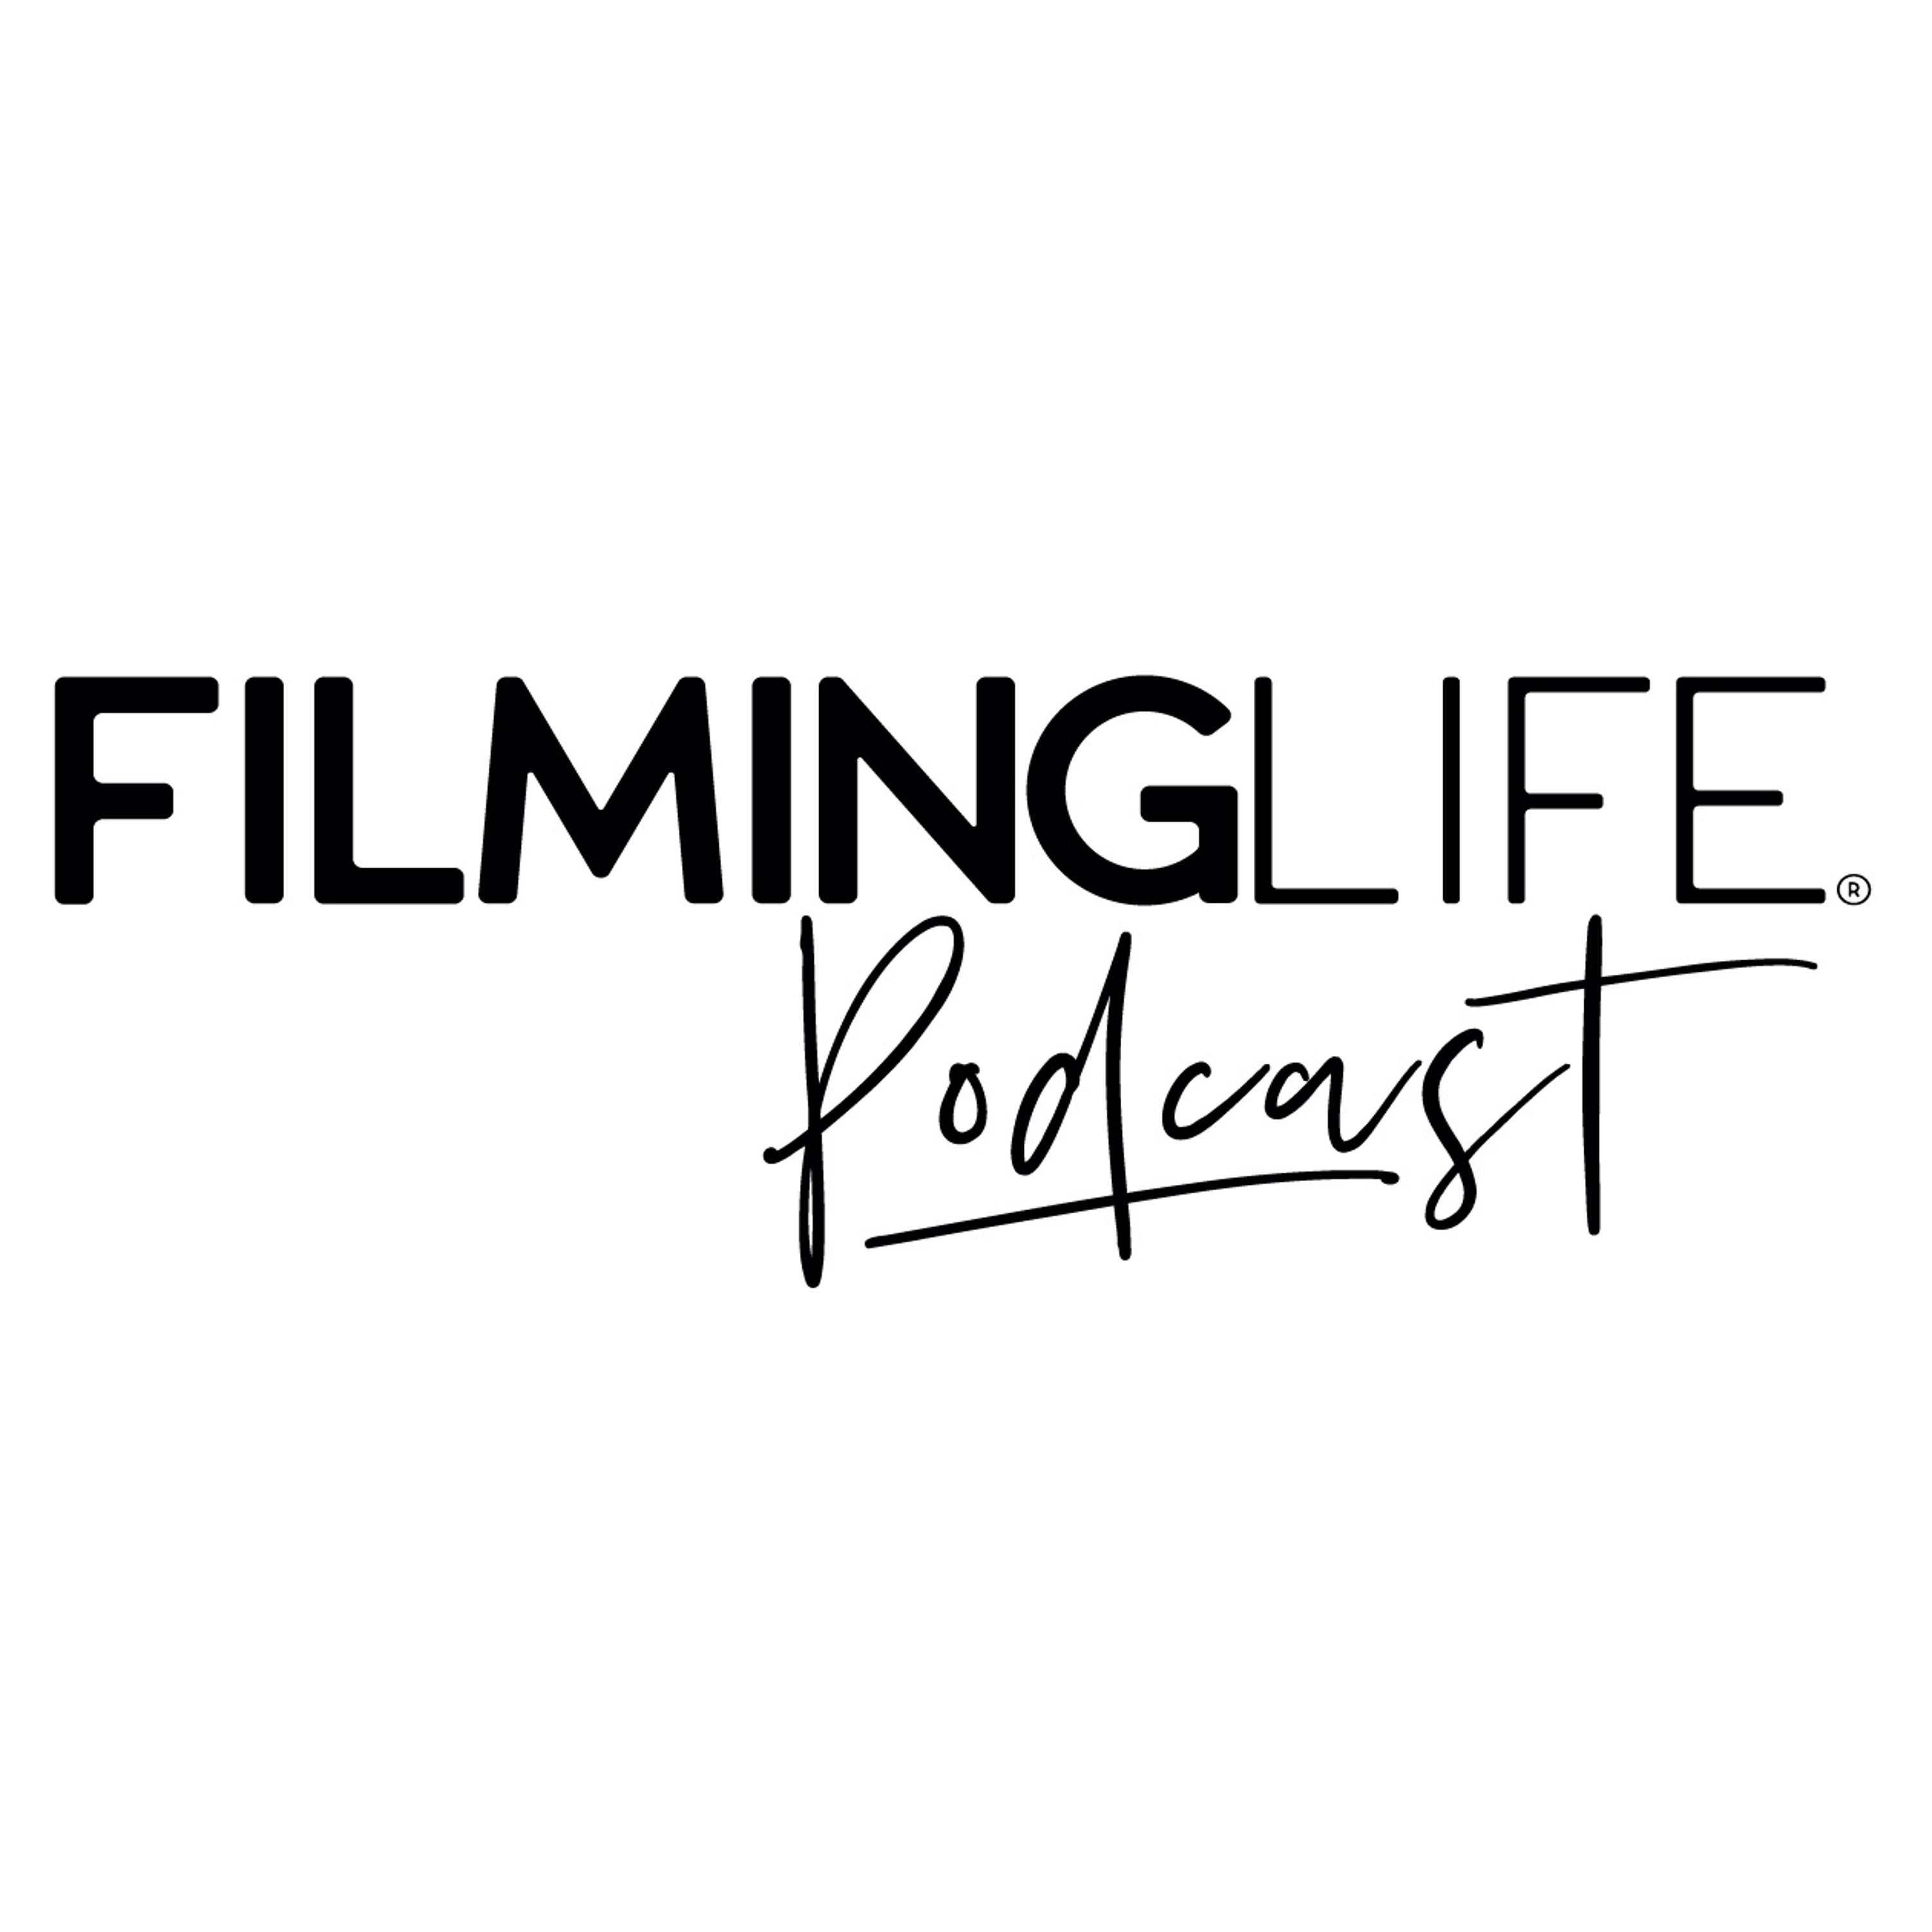 Episode 13: A Look at the Year Ahead for FilmingLife